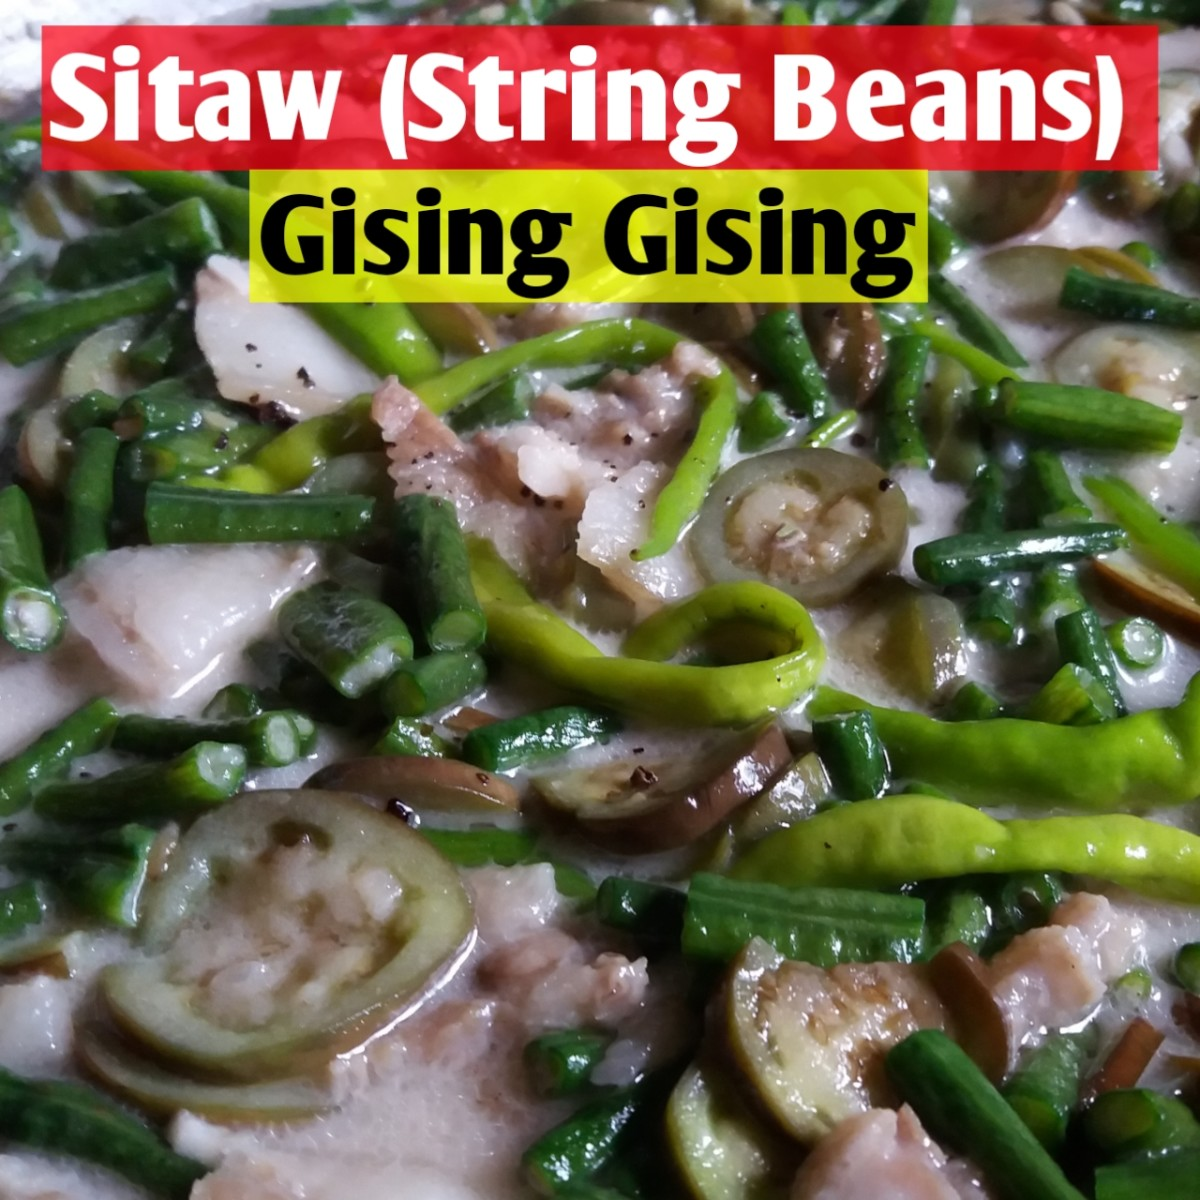 How to Cook Sitaw (String Beans) Gising Gising